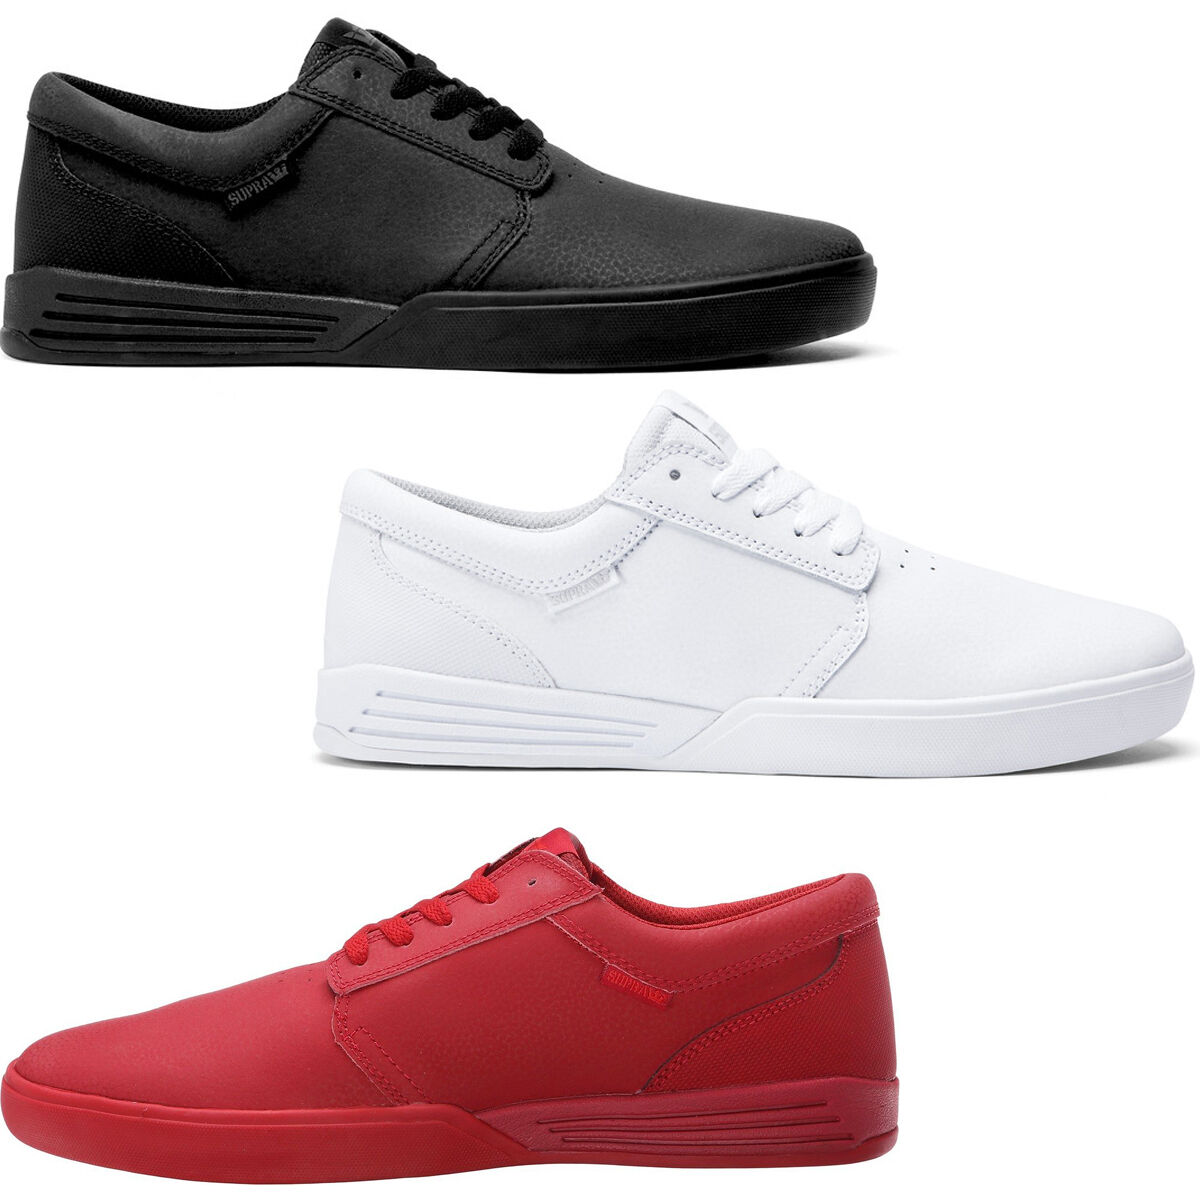 shoes SUPRA HAMMER SNEAKERS RED FOOTWEAR SHOES SCARPA HIGH TRAINER NEW BLACK